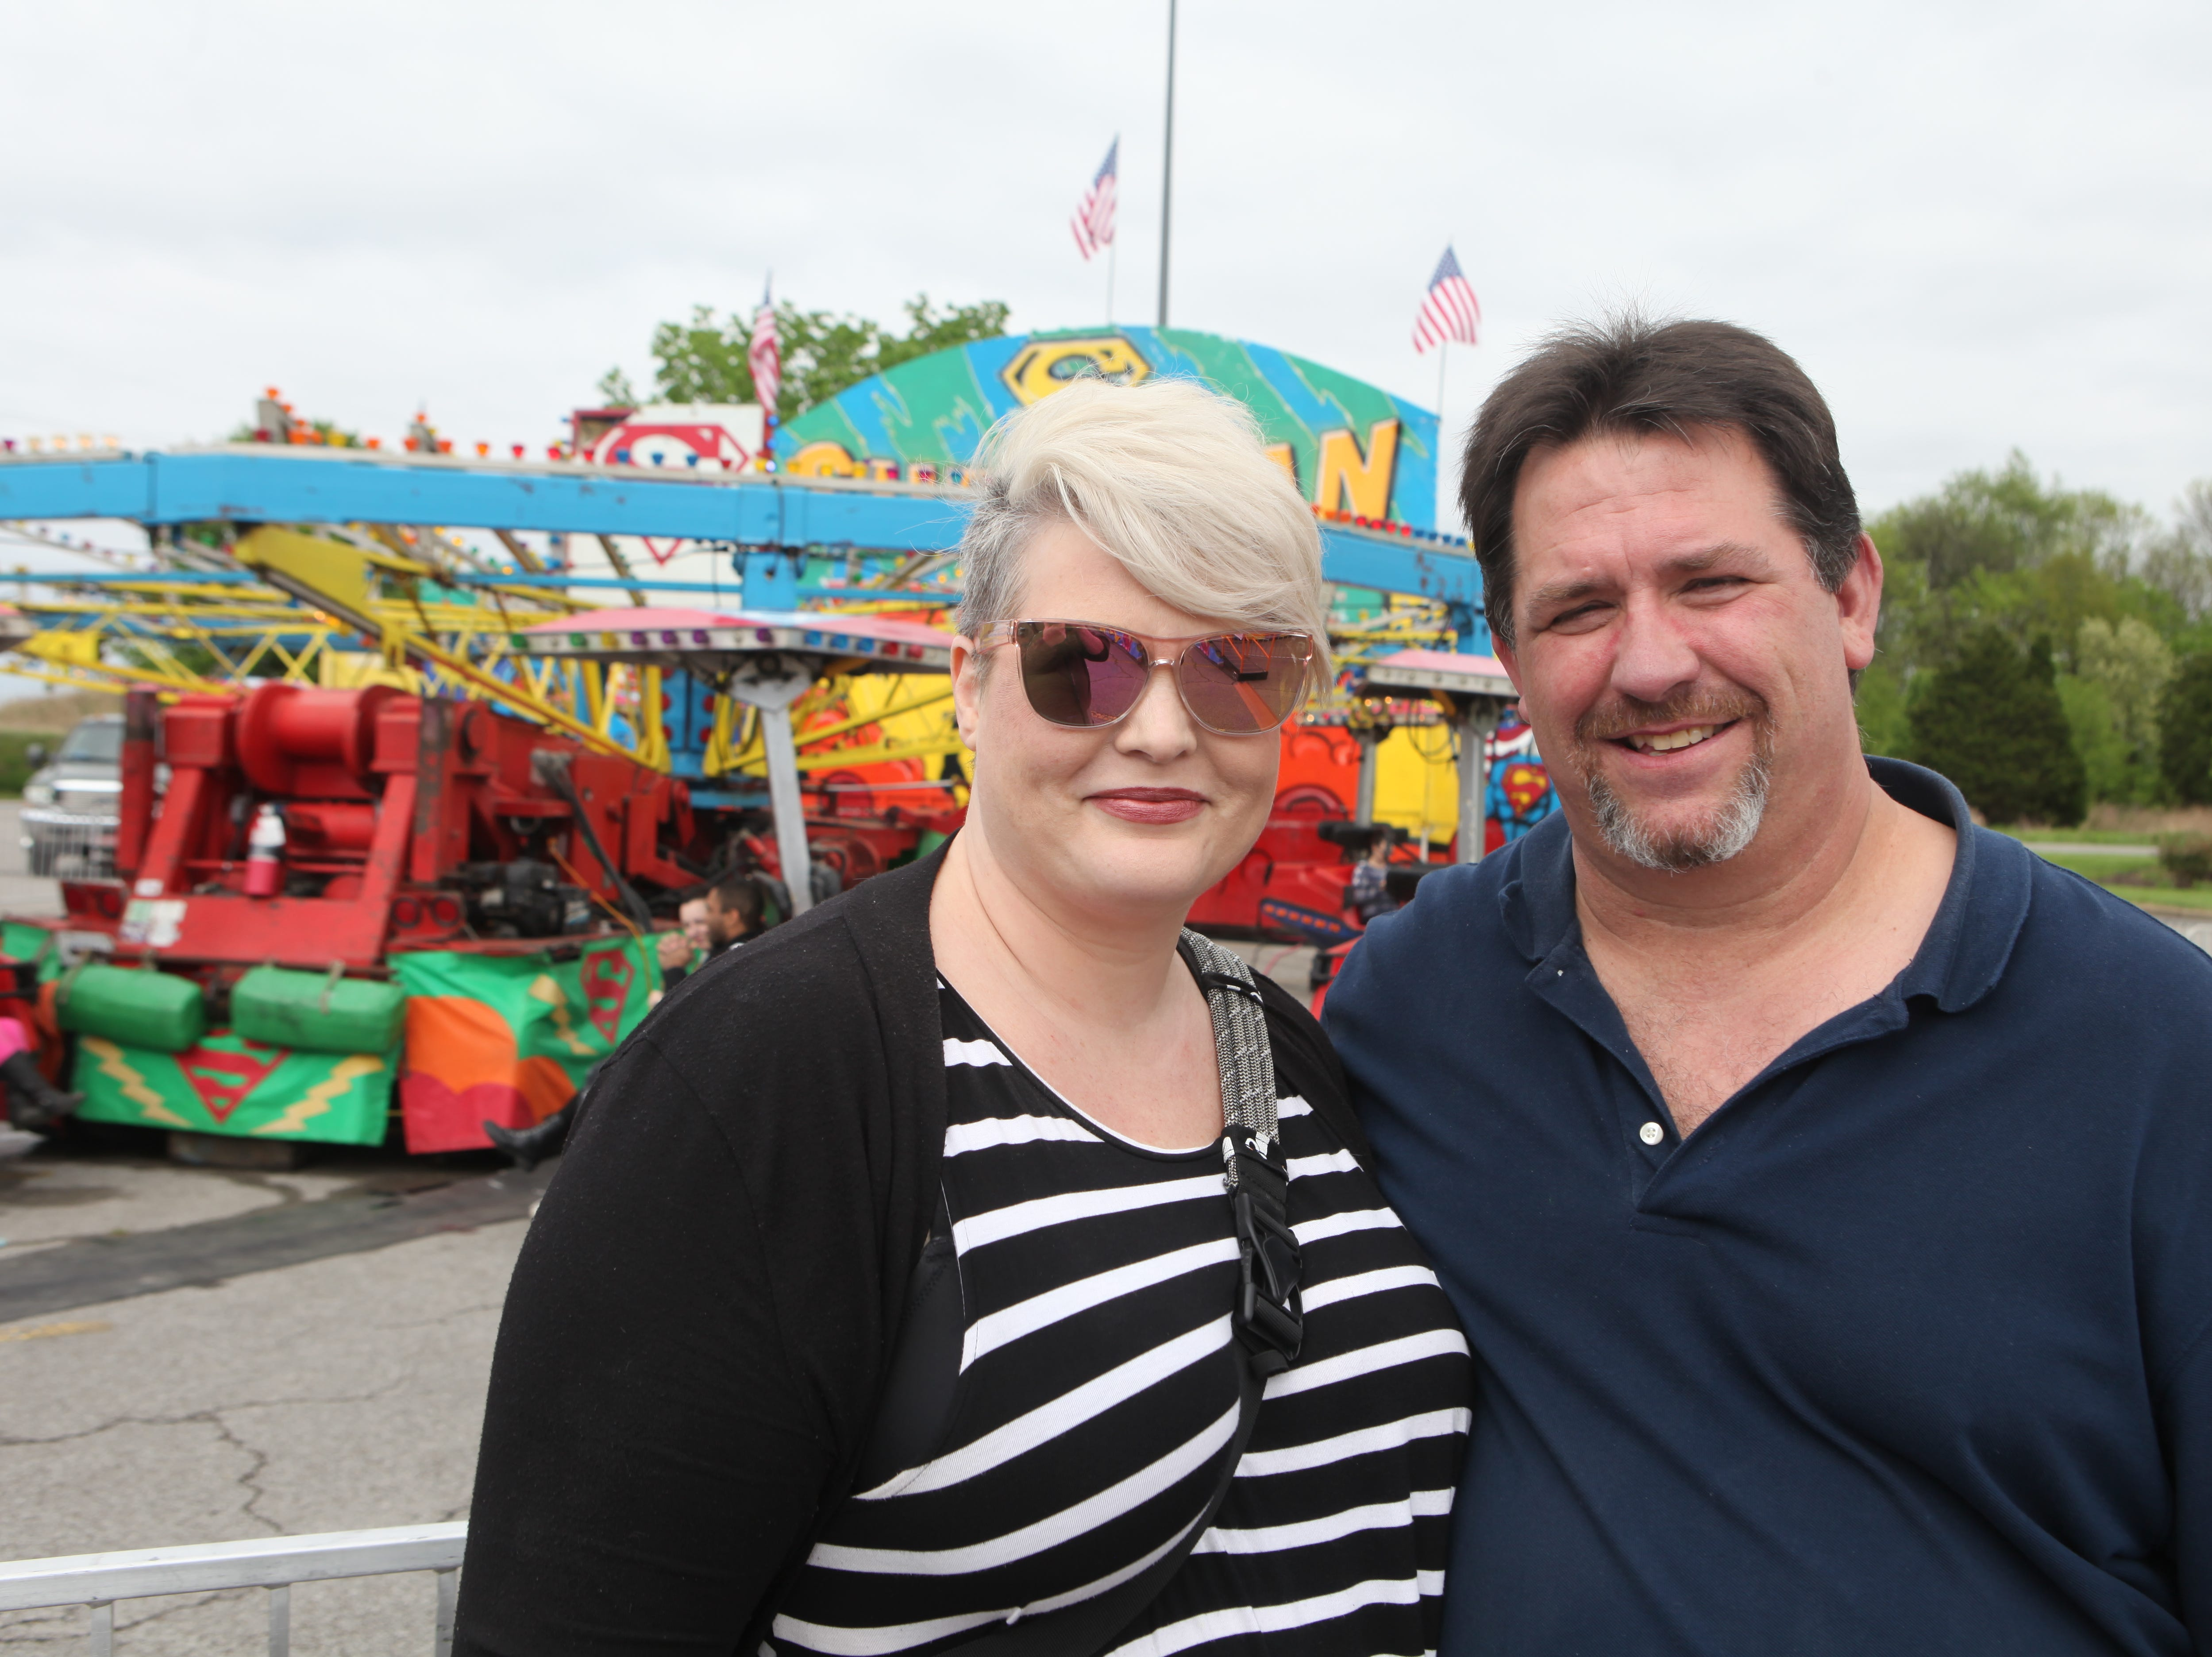 Jenny and Tony Jenkins at Governor's Square Mall's Spring Carnival on Saturday, April 20, 2019.